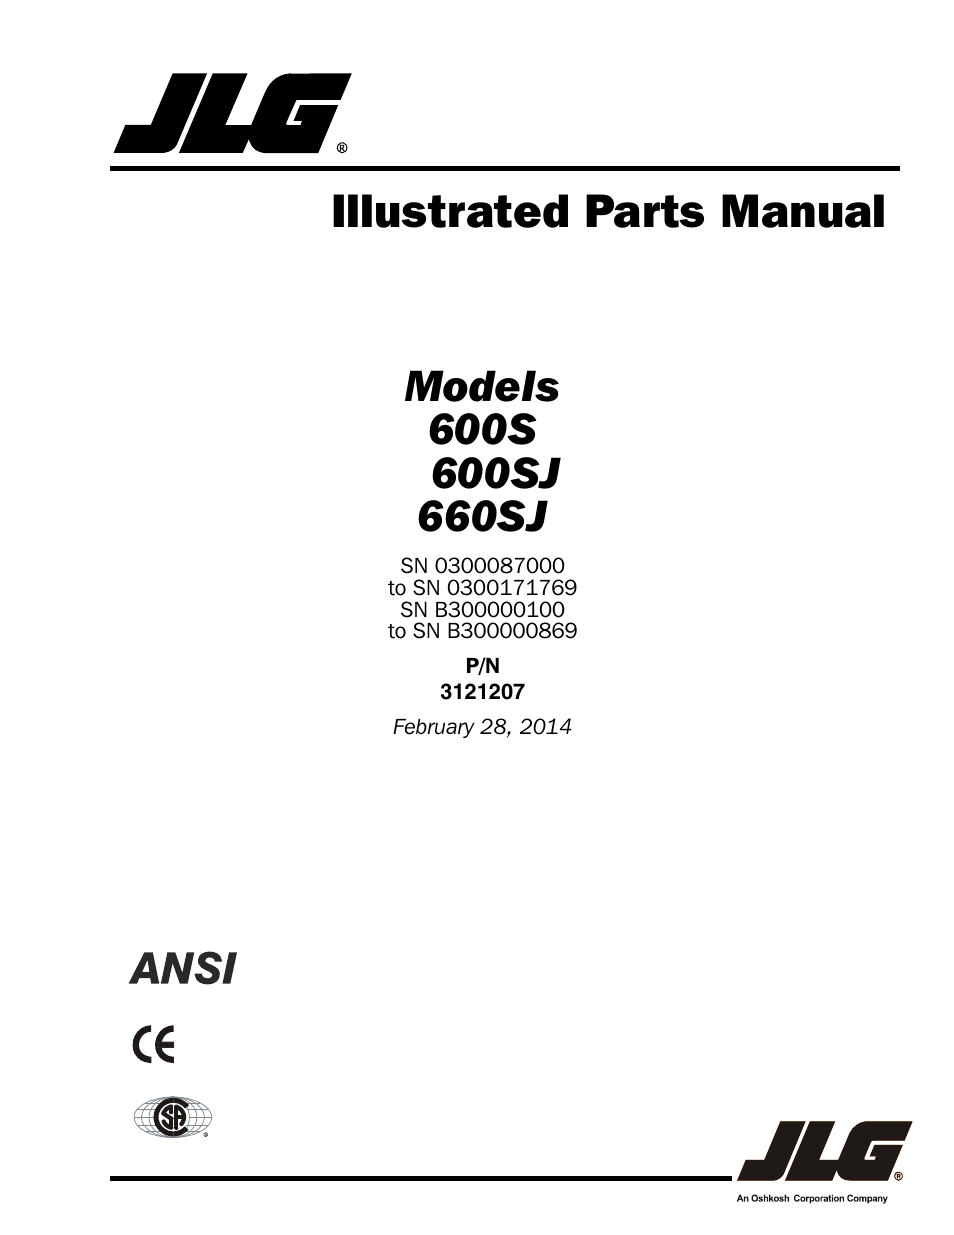 110 Schematic Wiring Diagram Jlg 660sj Parts Manual User Manual 404 Pages Also For